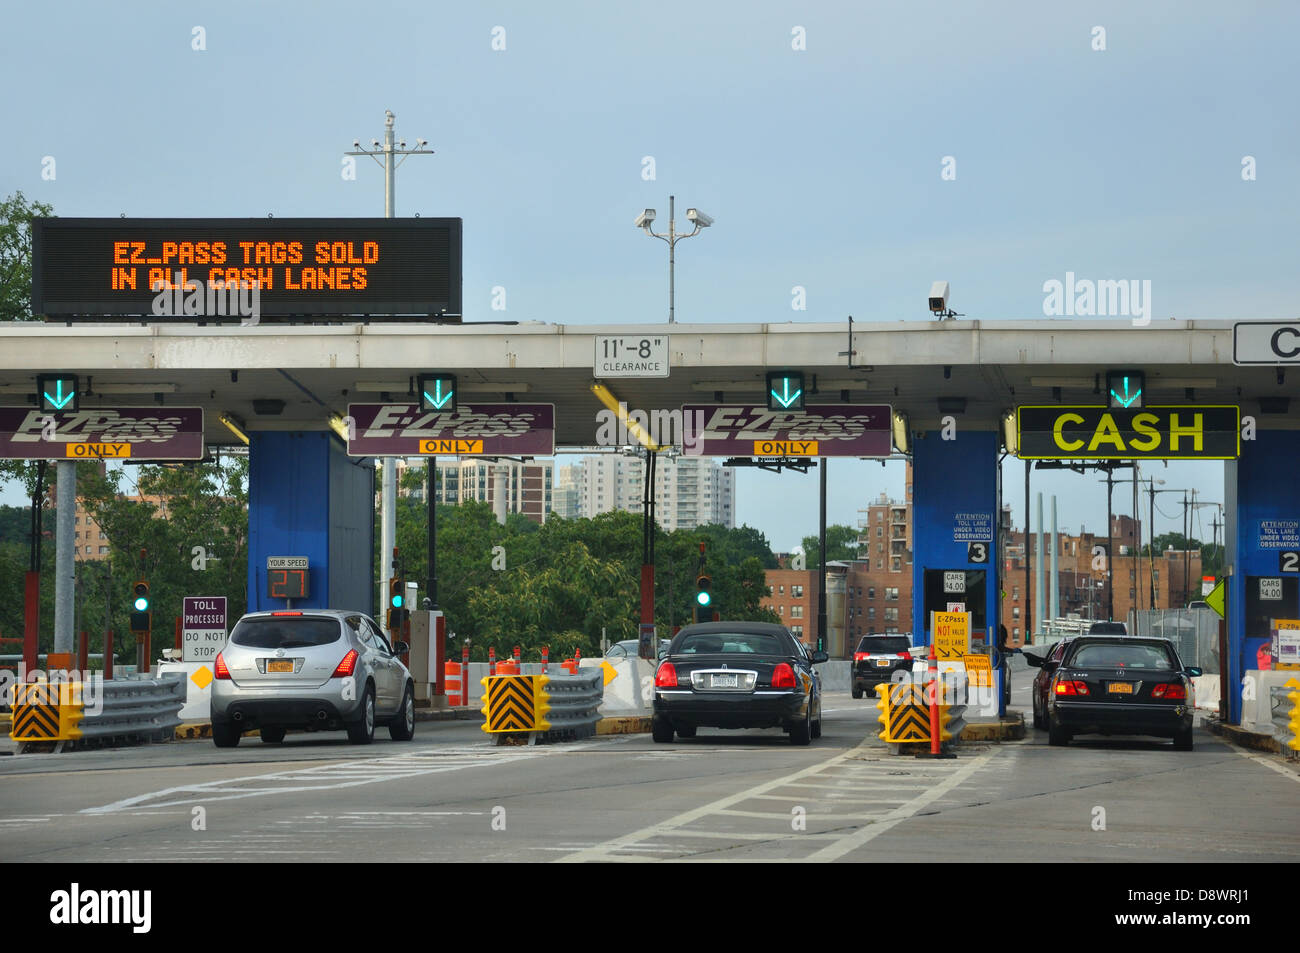 Highway tollbooth in New York City, USA - Stock Image